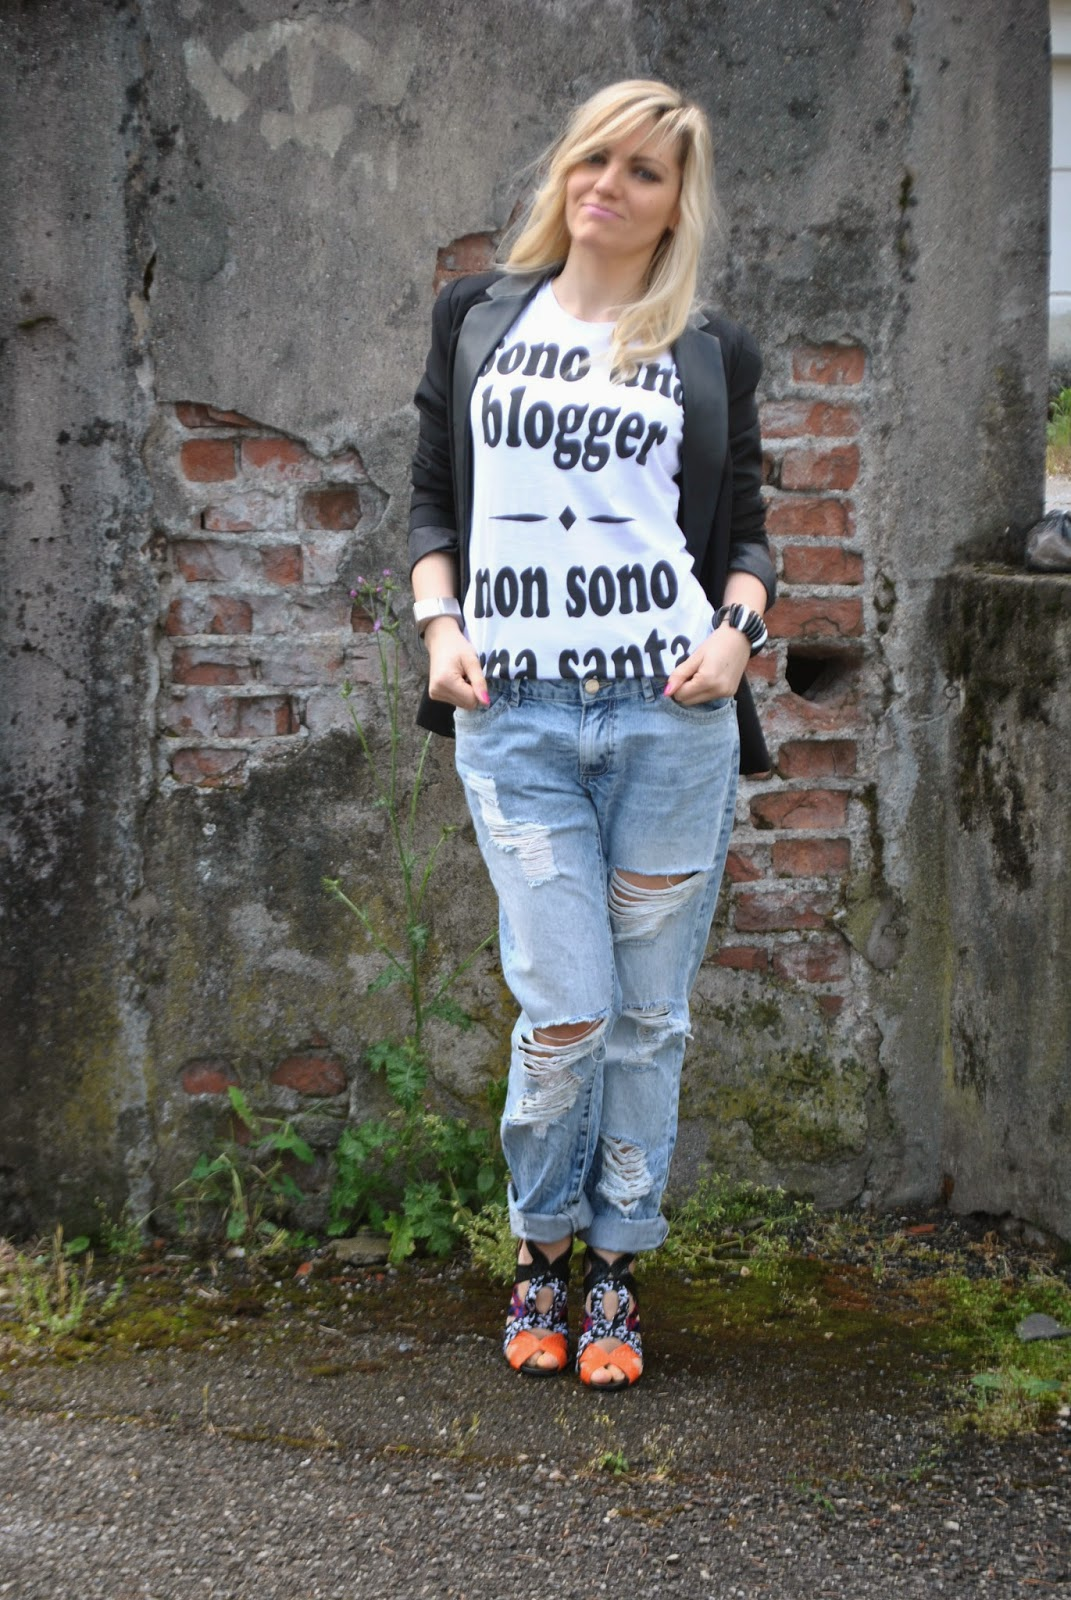 outfit jeans e tacchi outfit boyfriend ripped jeans outfit tshirt outfit giacca nera mariafelicia magno colorblock by felym mariafelicia magno fashion blogger outfit primaverili donna jeans e tacchi tshirt happiness giacca reverse nera sandali etnici come abbianre la giacca nera come abbinare i boyfirend jeans abbianmenti boyfriend jeans pimkie blogger italiane di moda milano fashion blog italiani ragazze bionde girl italian girl fashion bloggers italy how to wear boyfriend ripped jeans black blazer jeans and heels blondie girls fashion bloggers italy